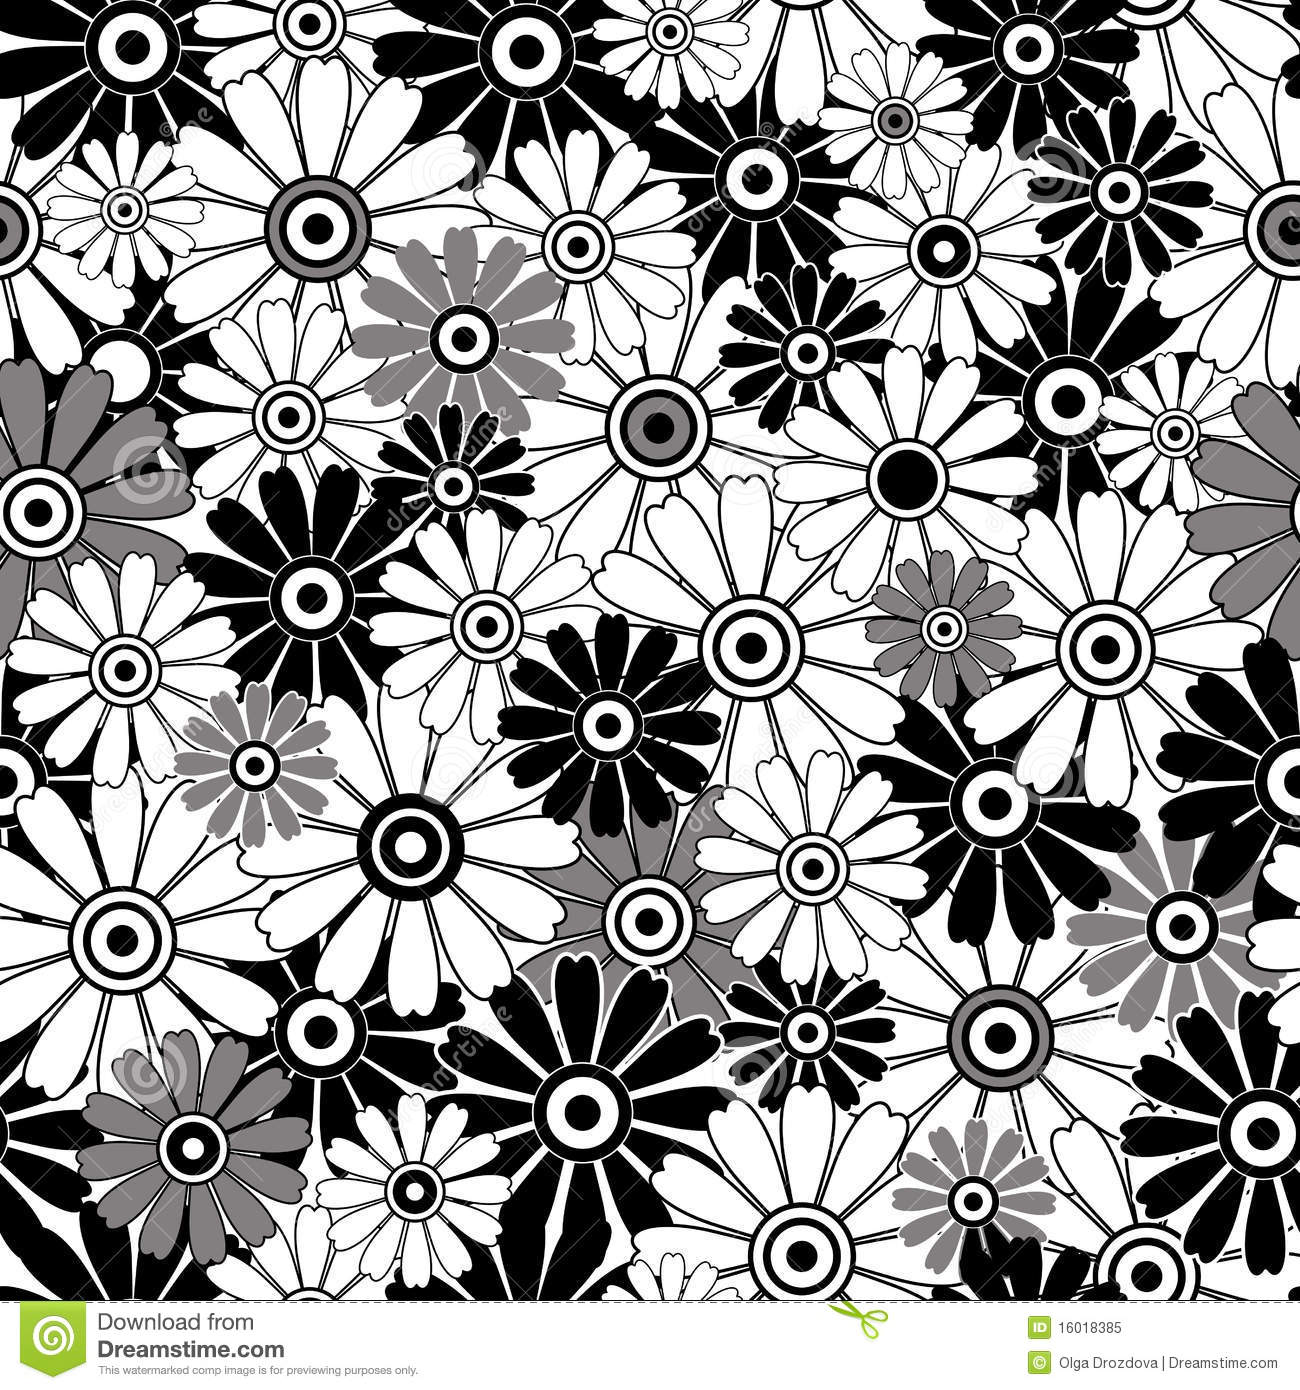 Flower Patterns Black And White